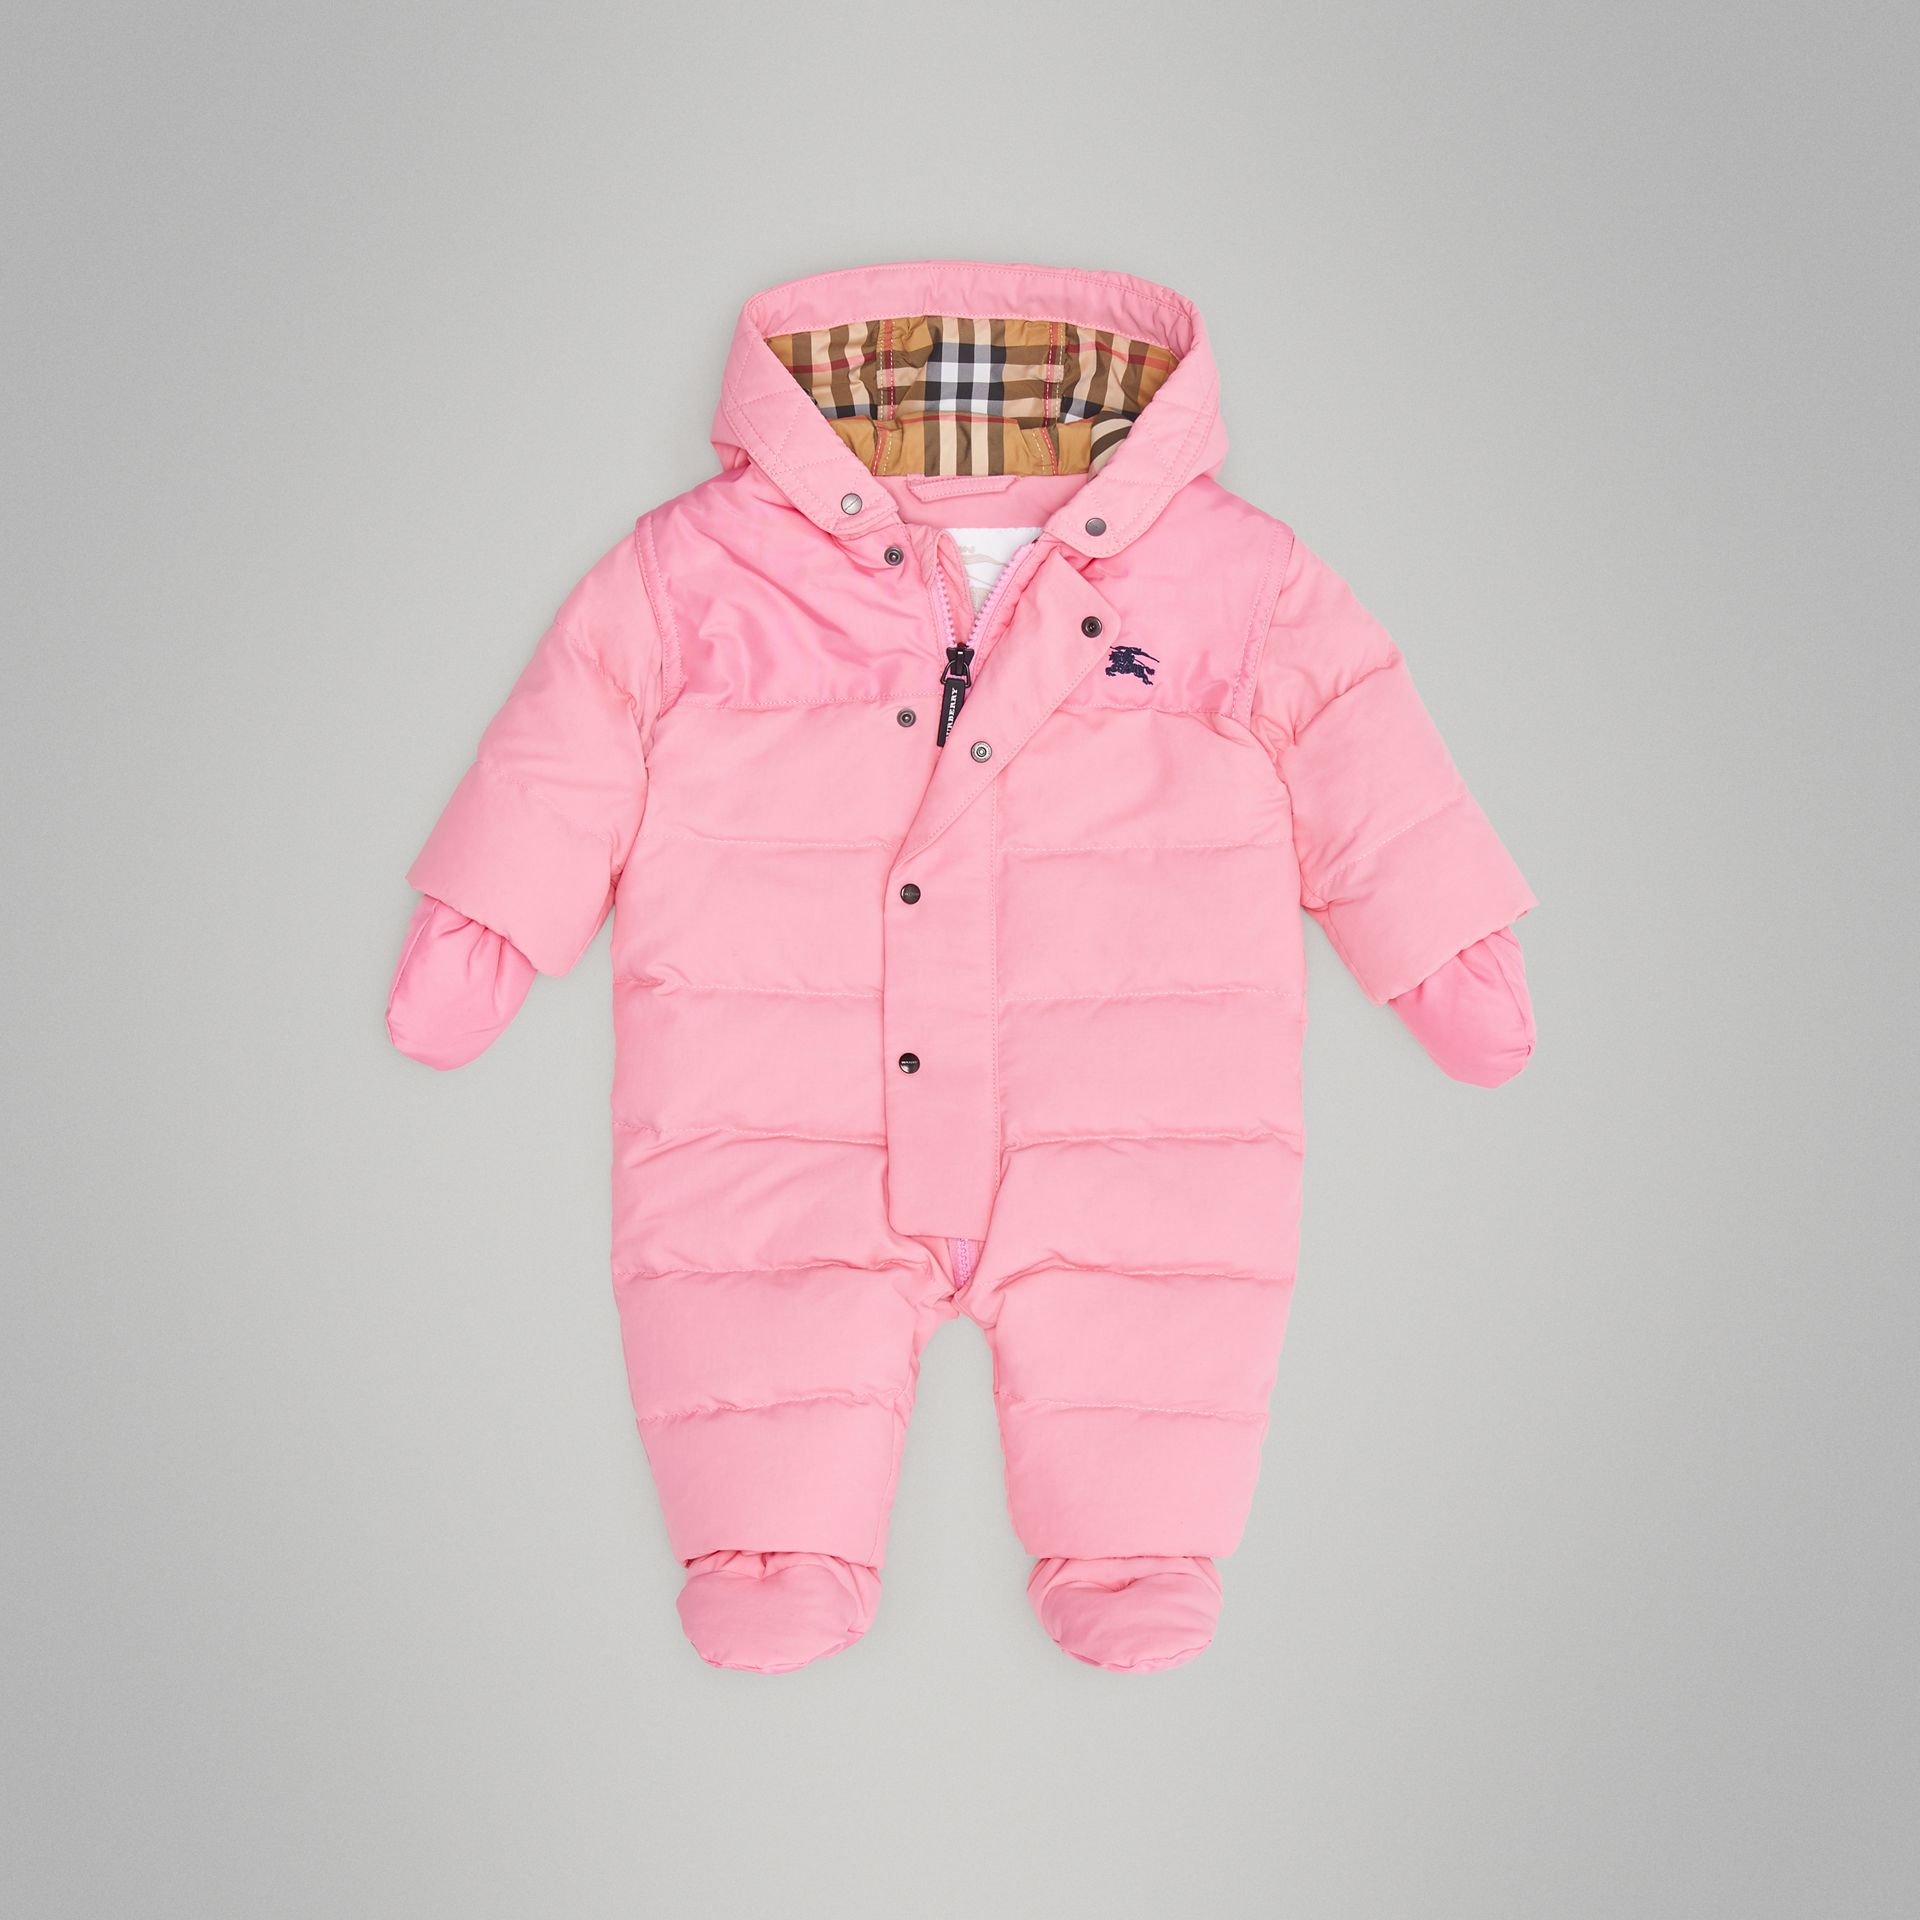 Down-filled Puffer Suit in Ice Pink - Children | Burberry Australia - gallery image 2